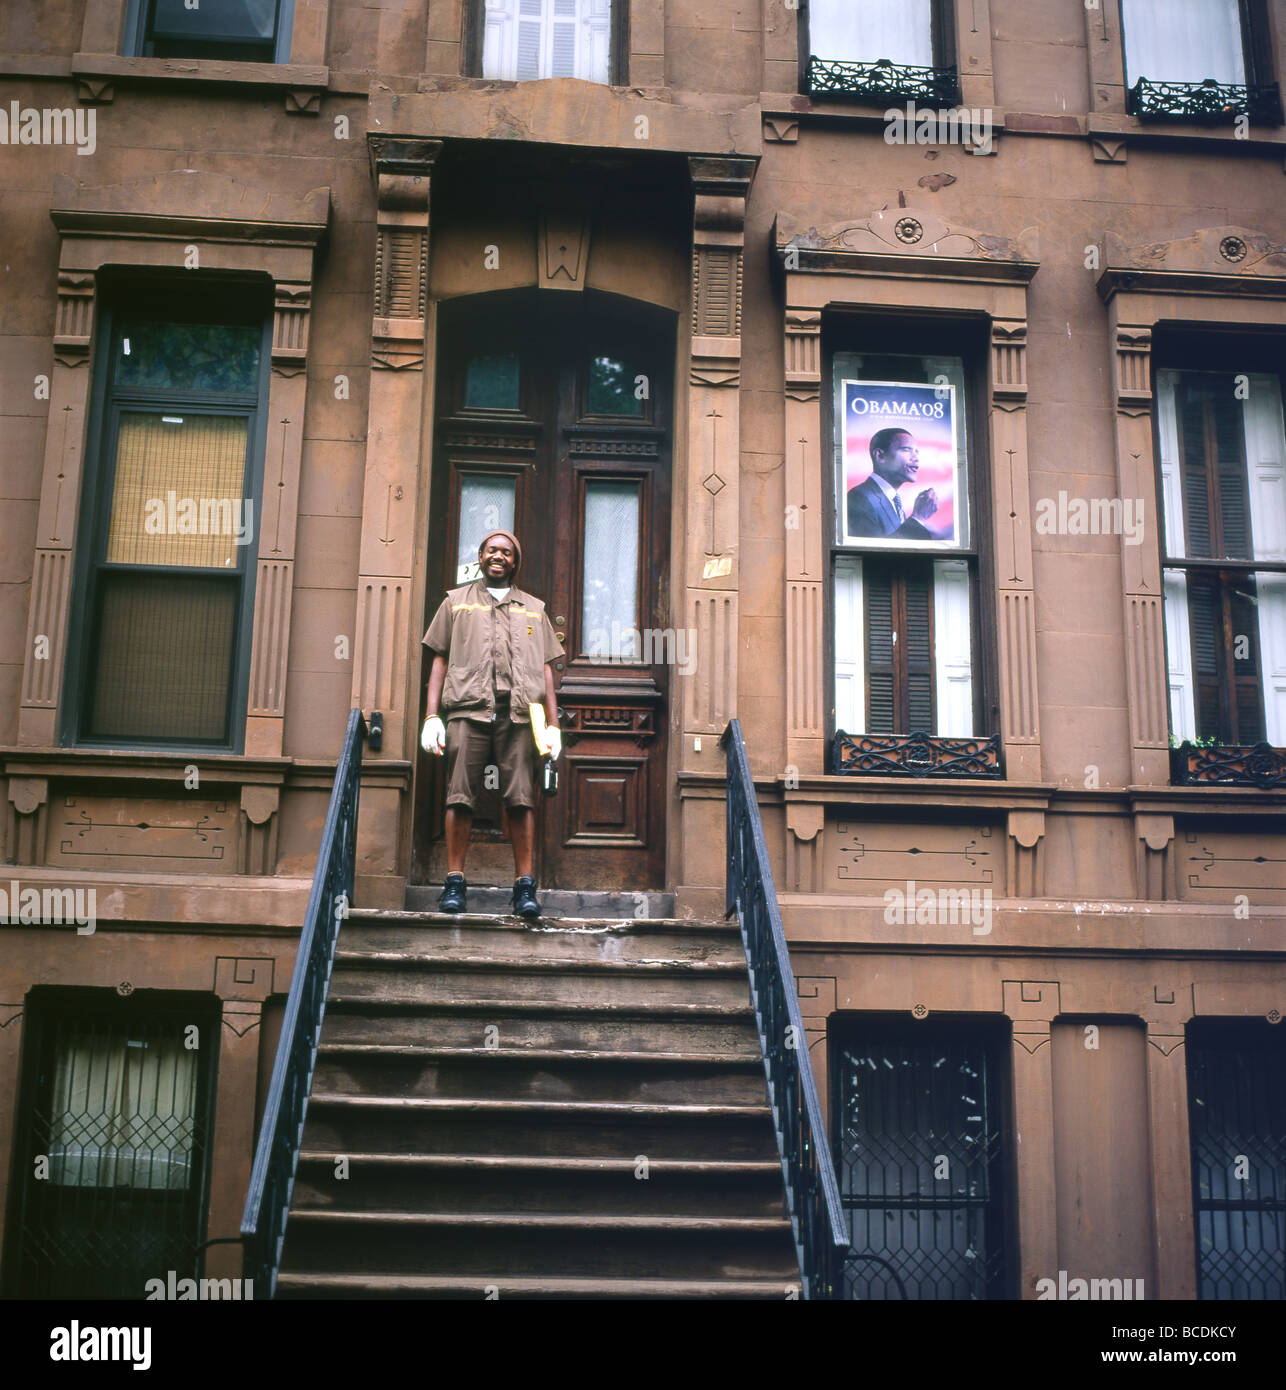 A Delivery Man Standing On The Steps Of A Brownstone